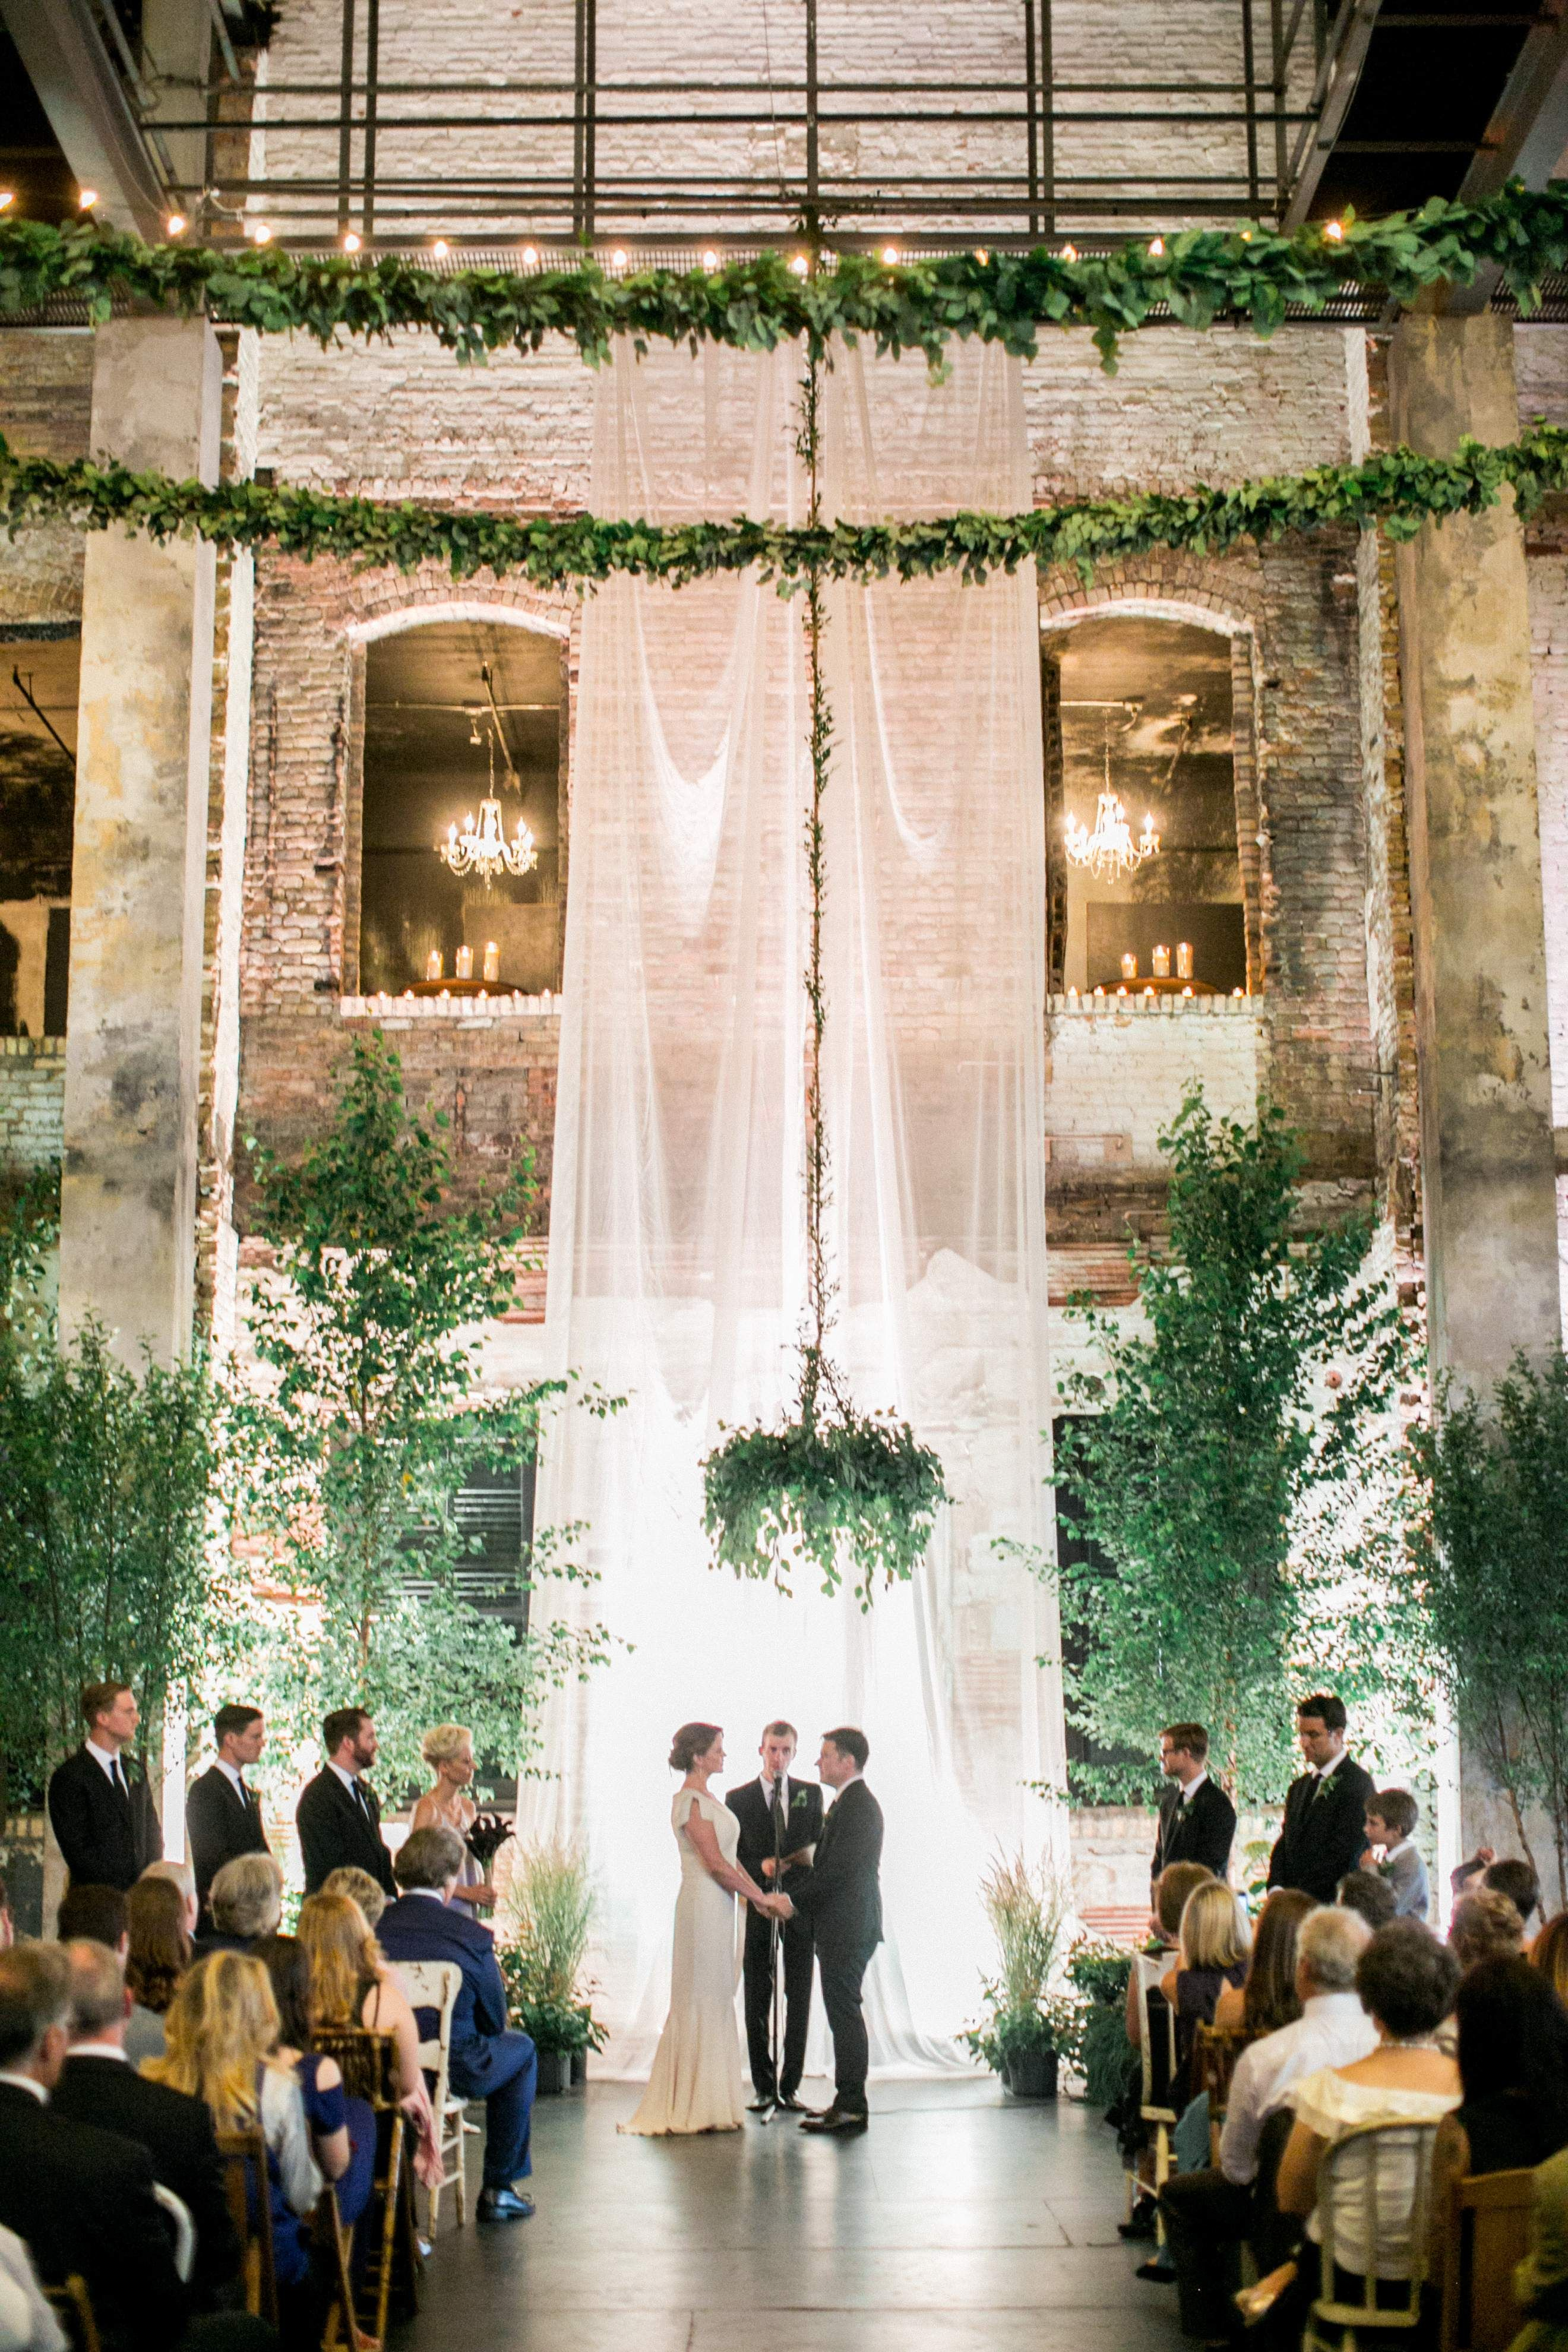 Rain Or Shine These Wedding Venues Have You Covered Indoor Wedding Ceremonies Wedding Ceremony Backdrop Best Wedding Venues